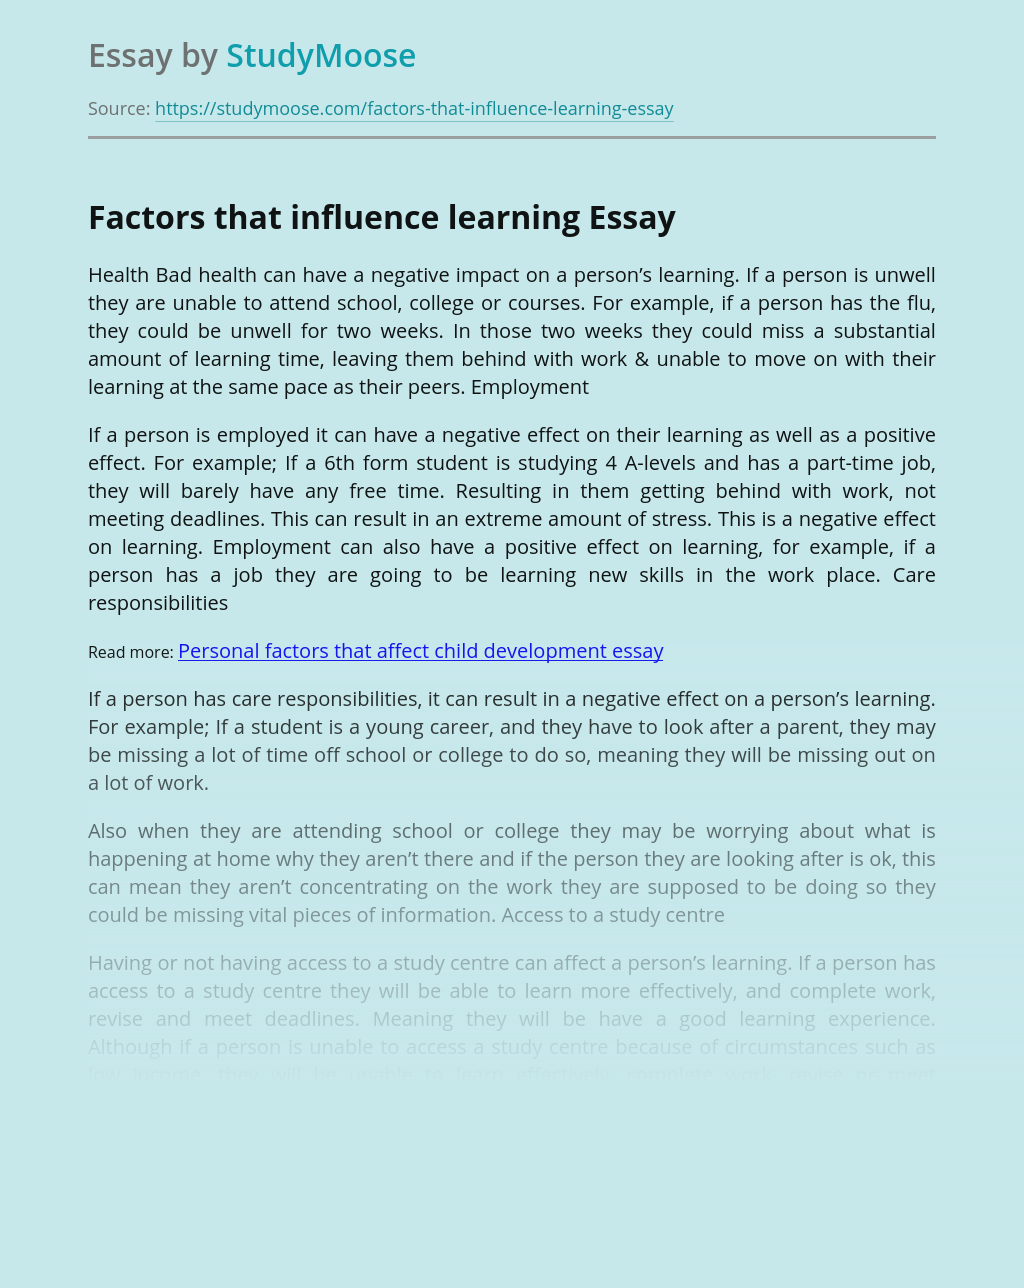 Factors that influence learning